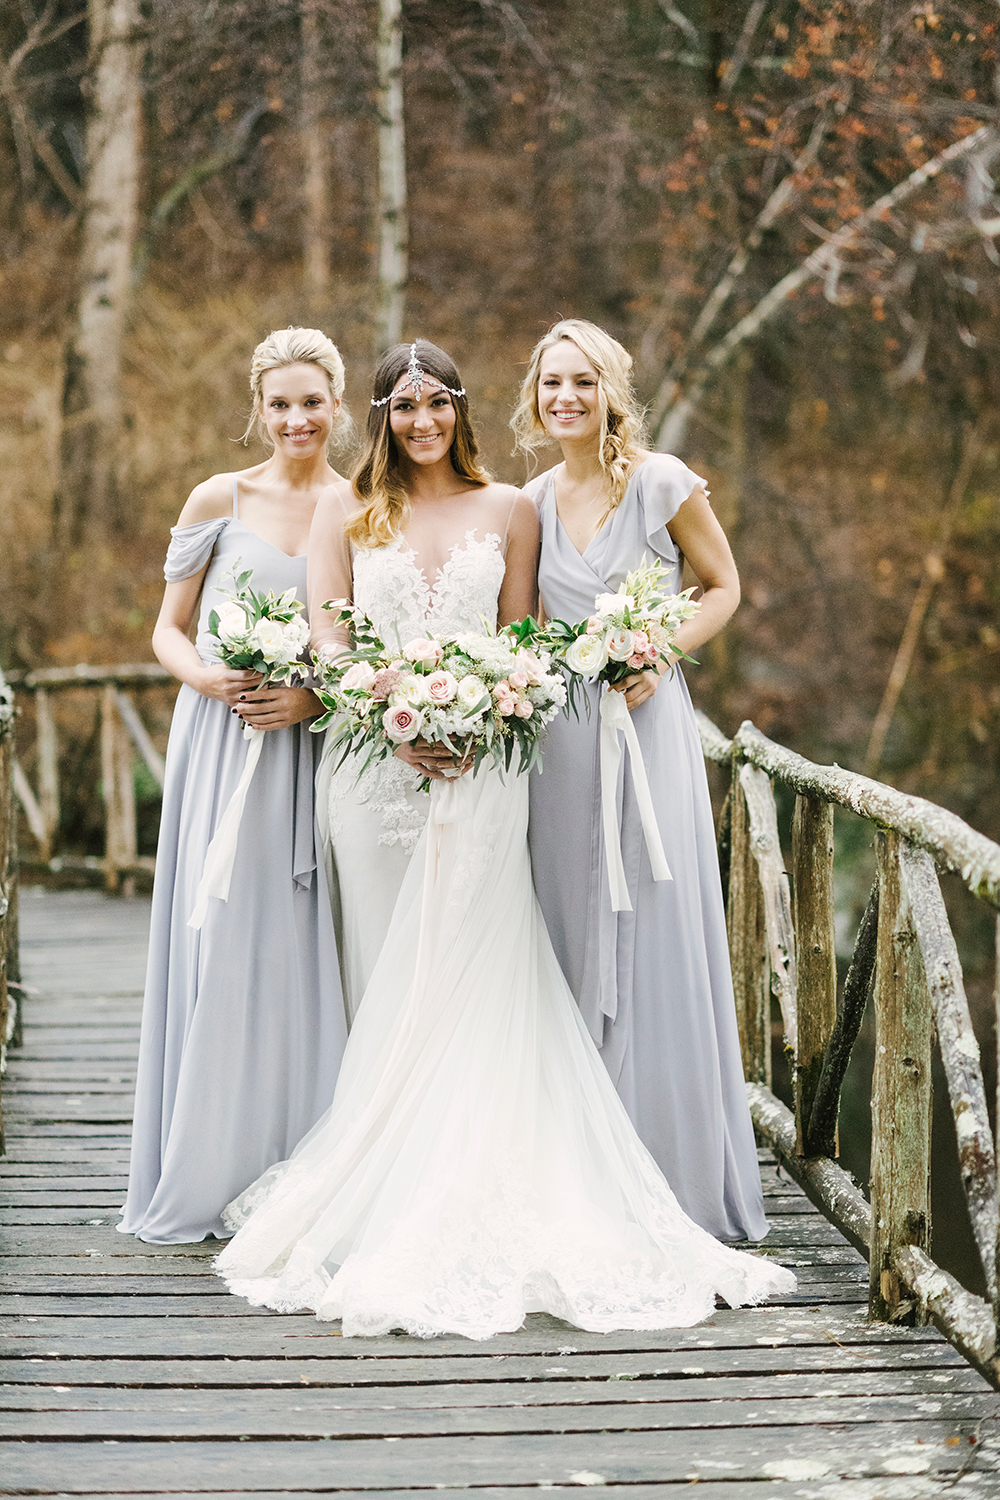 grey bridesmaid dresses - photo by Alicia King Photography http://ruffledblog.com/upstate-new-york-wedding-ideas-with-copper